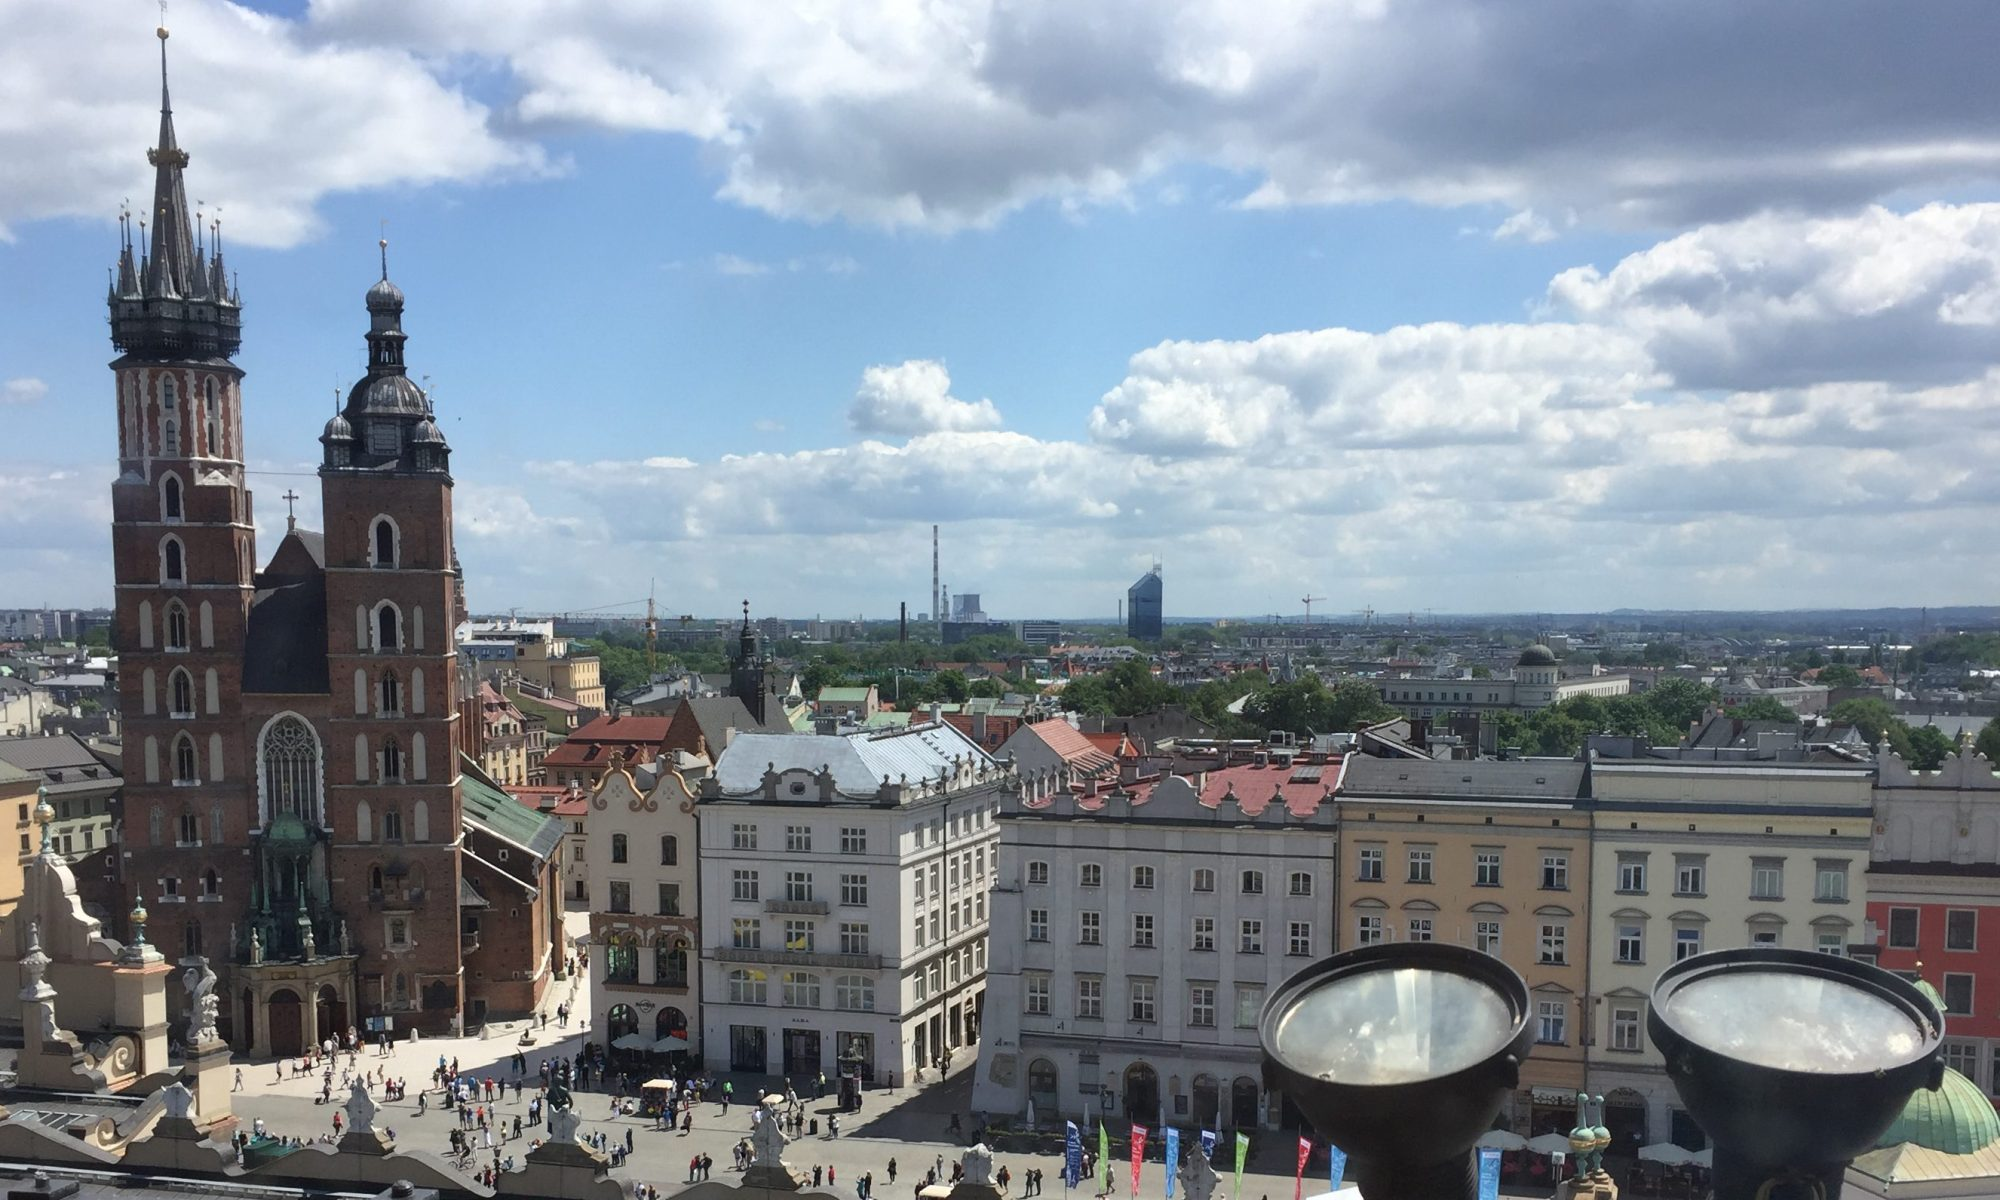 poland photo diary krakow old town square view from town hall tower